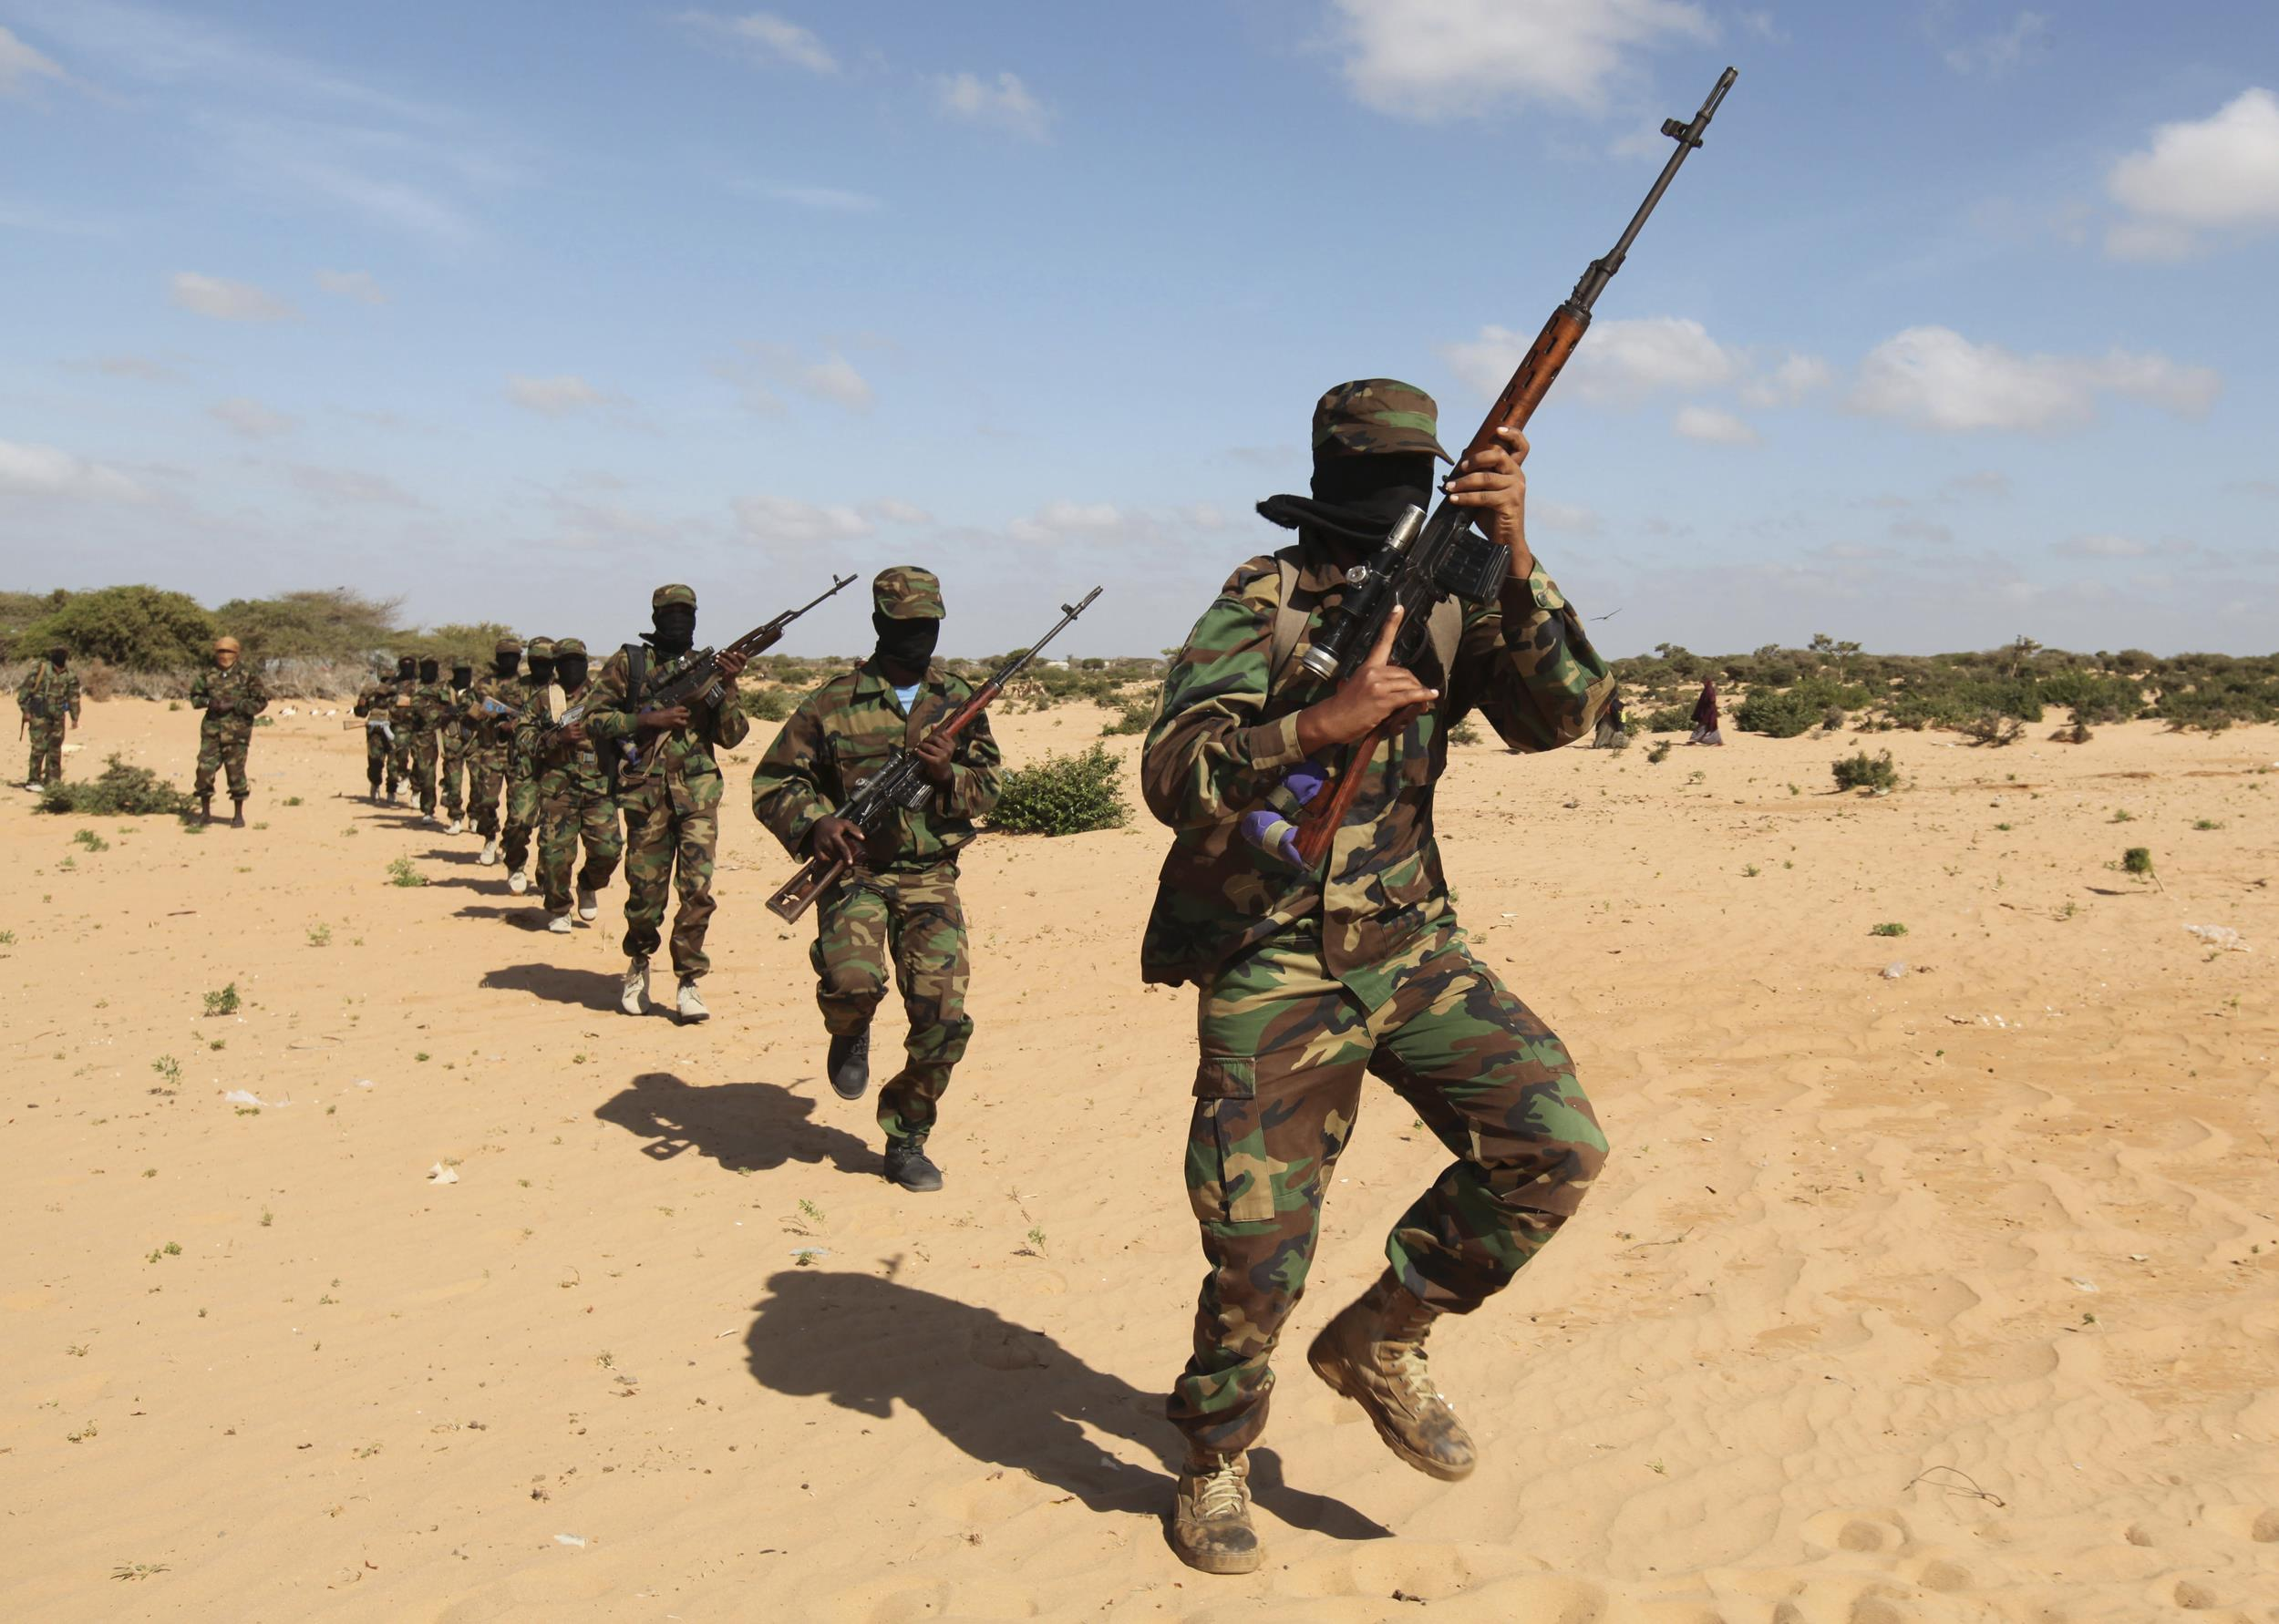 Members of Somalia's Al Shabaab militant group parade during a demonstration